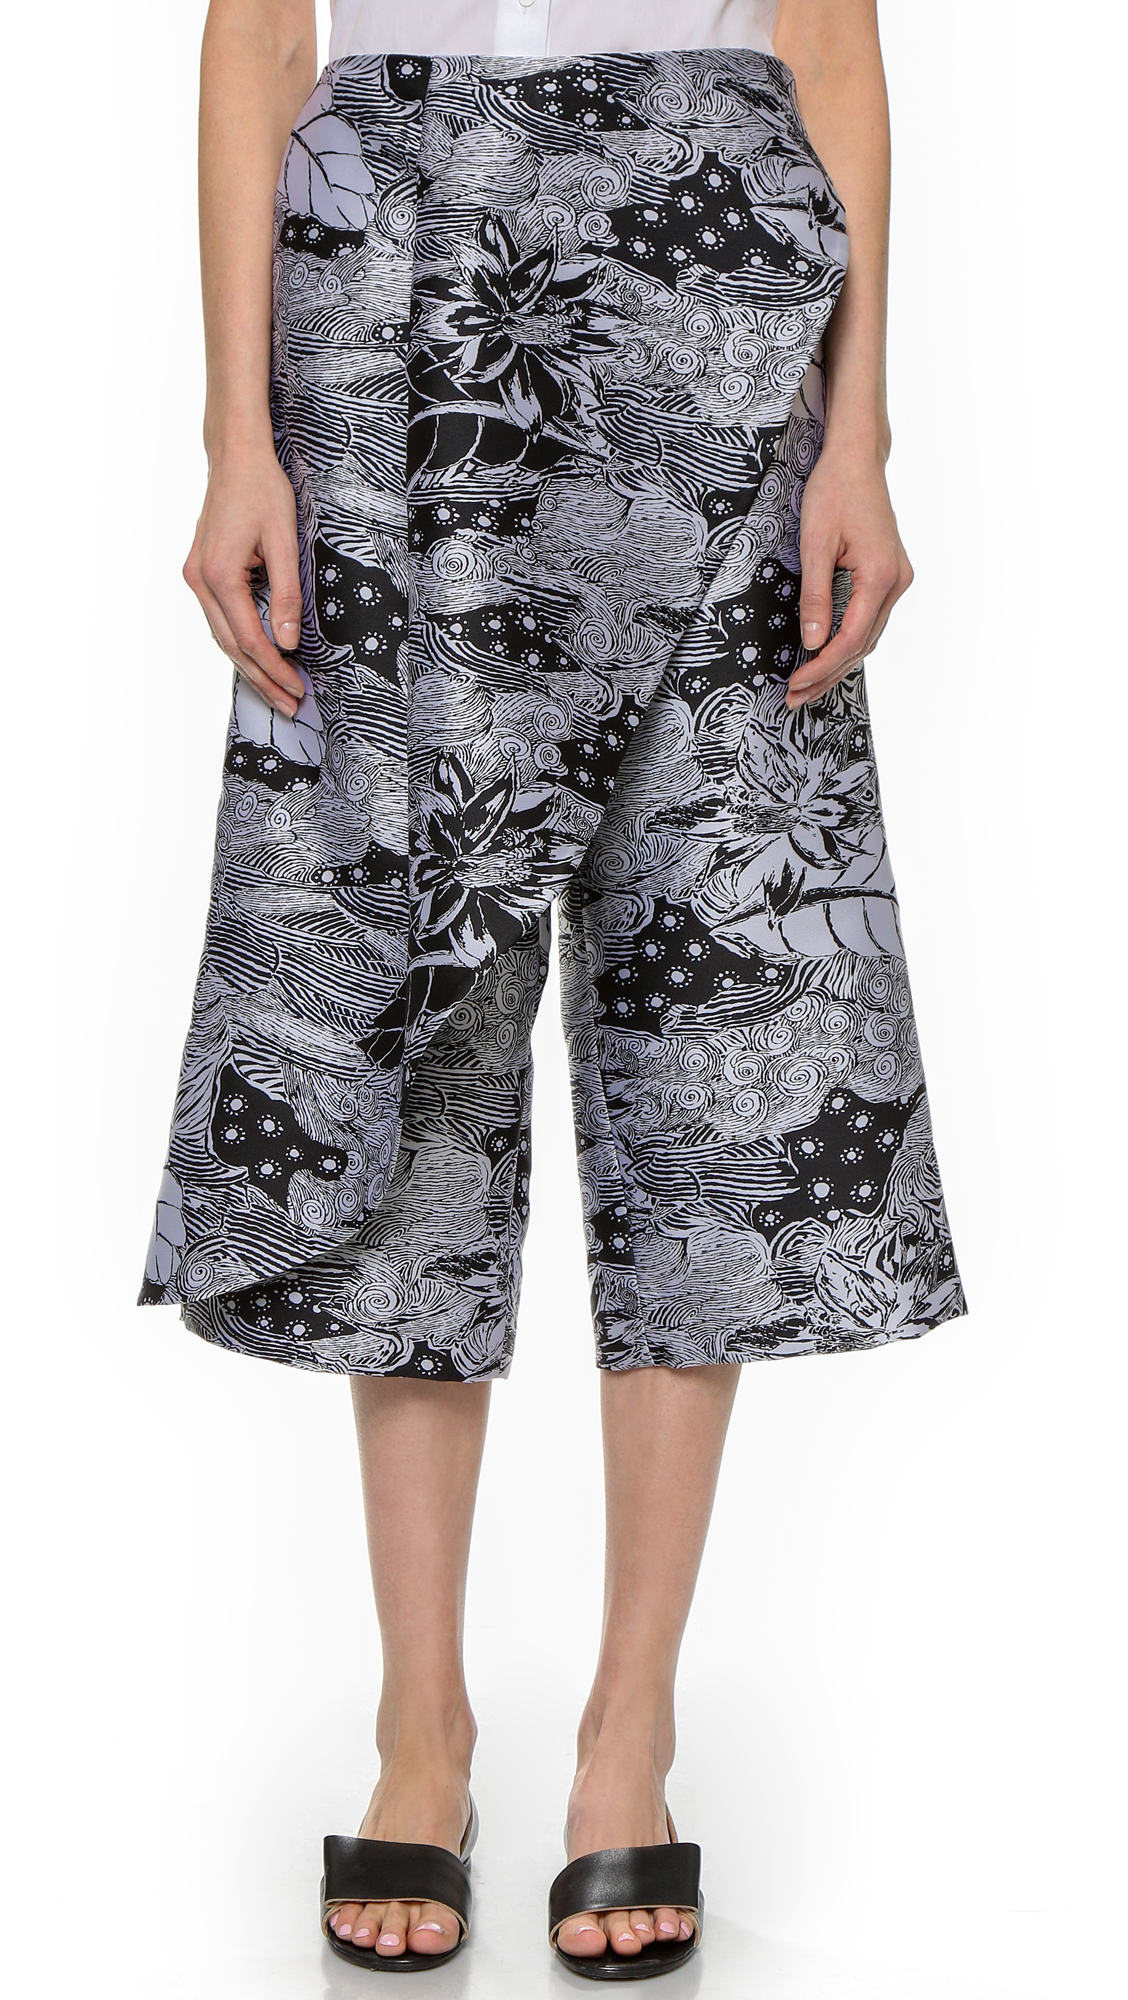 Thakoon Cross Front Cropped Pants - Black/White at Shopbop